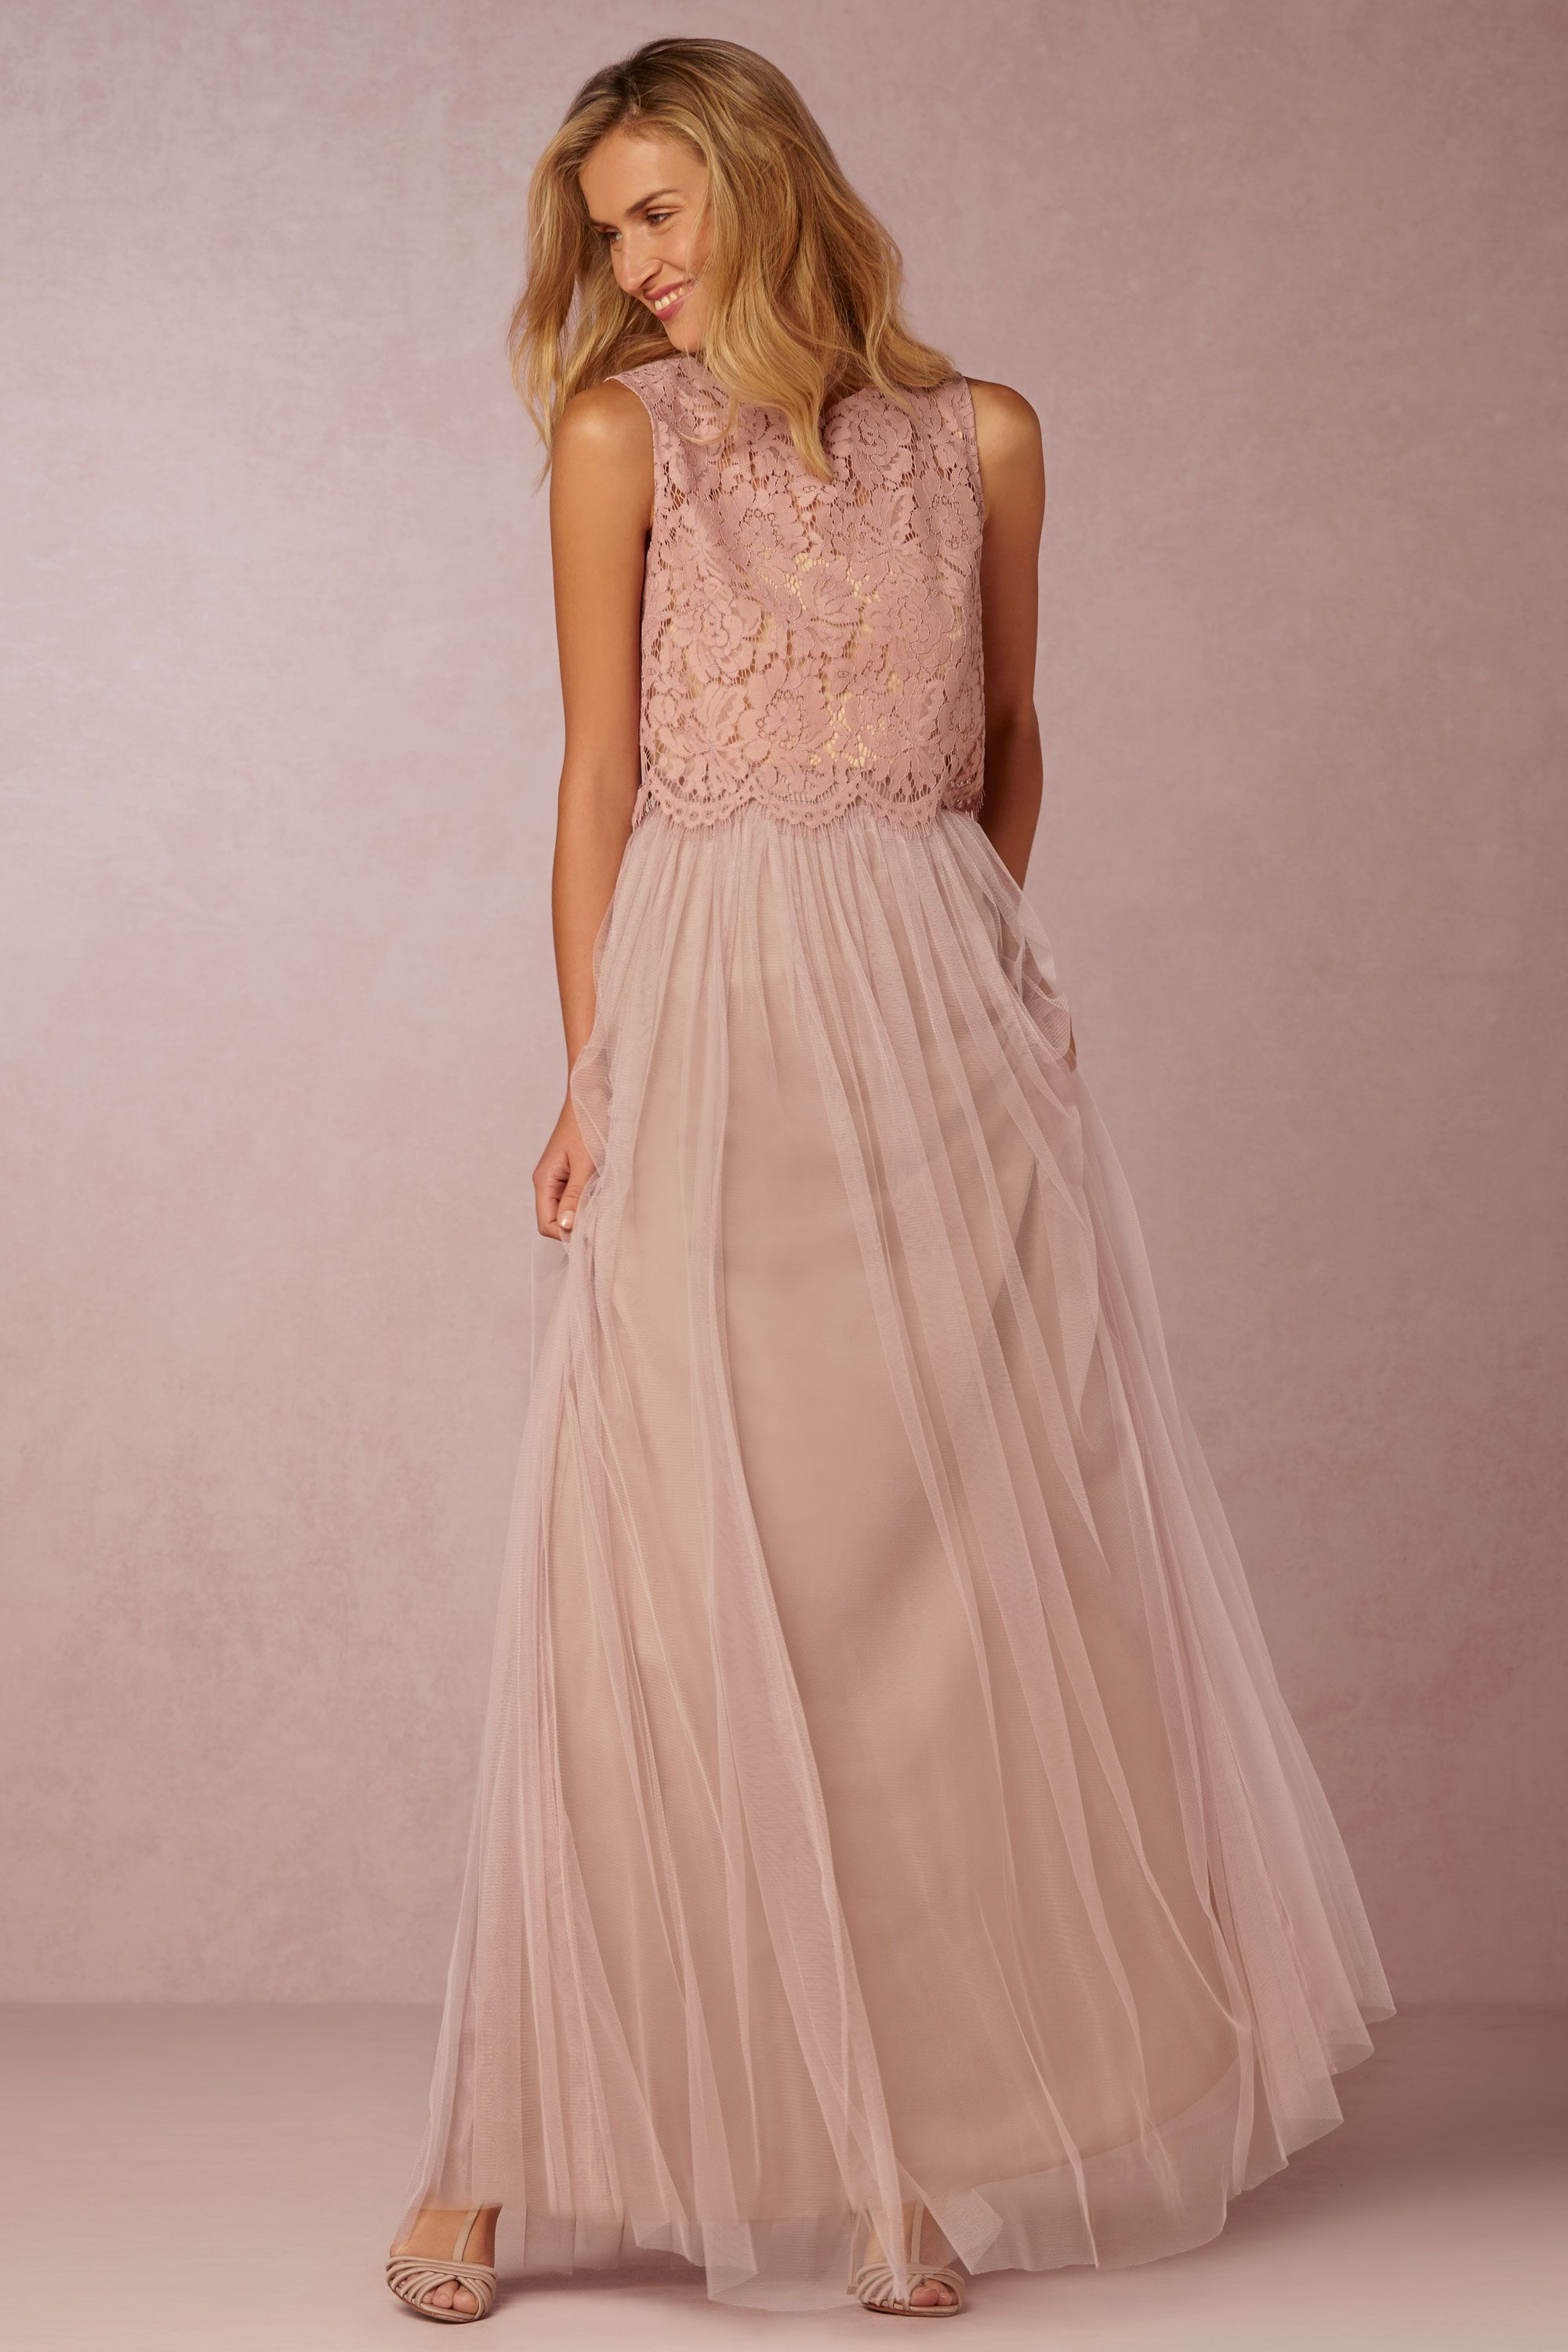 94c50480bacc1 We love this bridesmaid separates pairing from designer Jenny Yoo. The  cropped shell